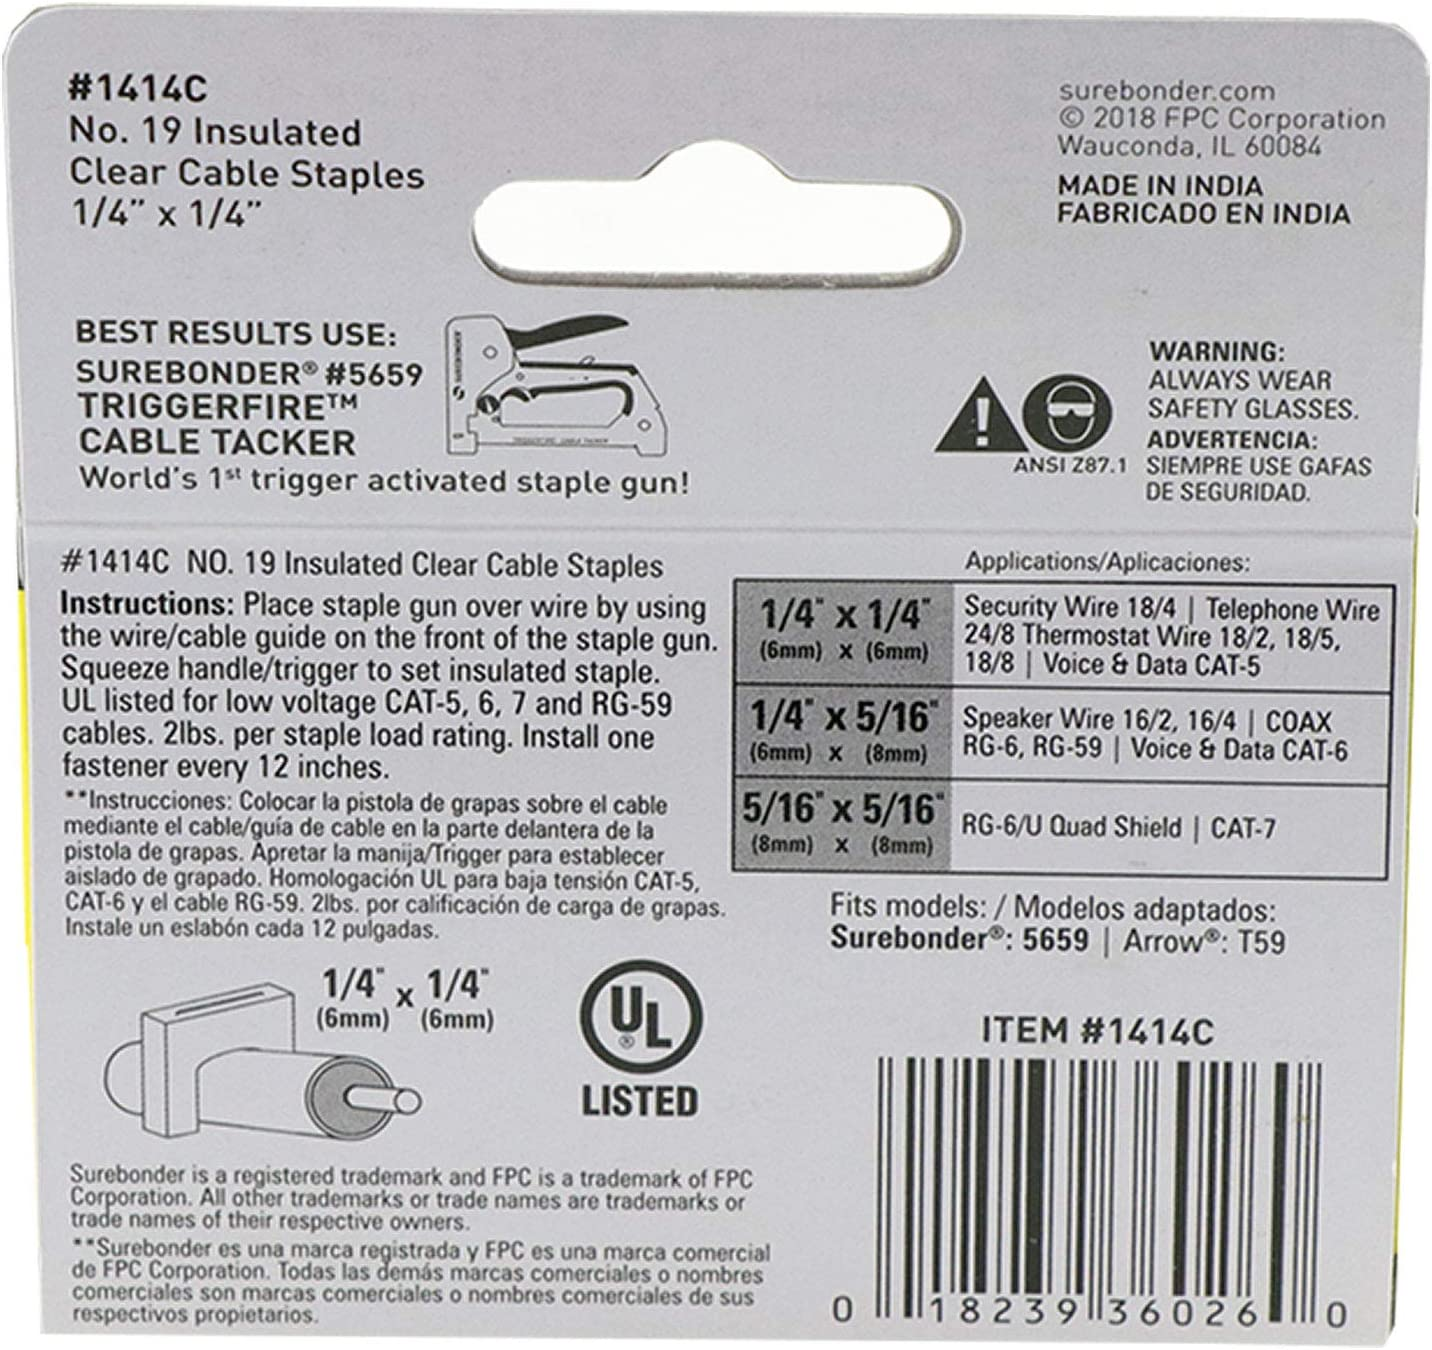 Telephone Wires for Security Thermostat Clear No Surebonder 1414C Cat-5 cable and other wire up to 1//4 wide 300 Pack Insulated Cable Staples 1//4 x 1//4 19